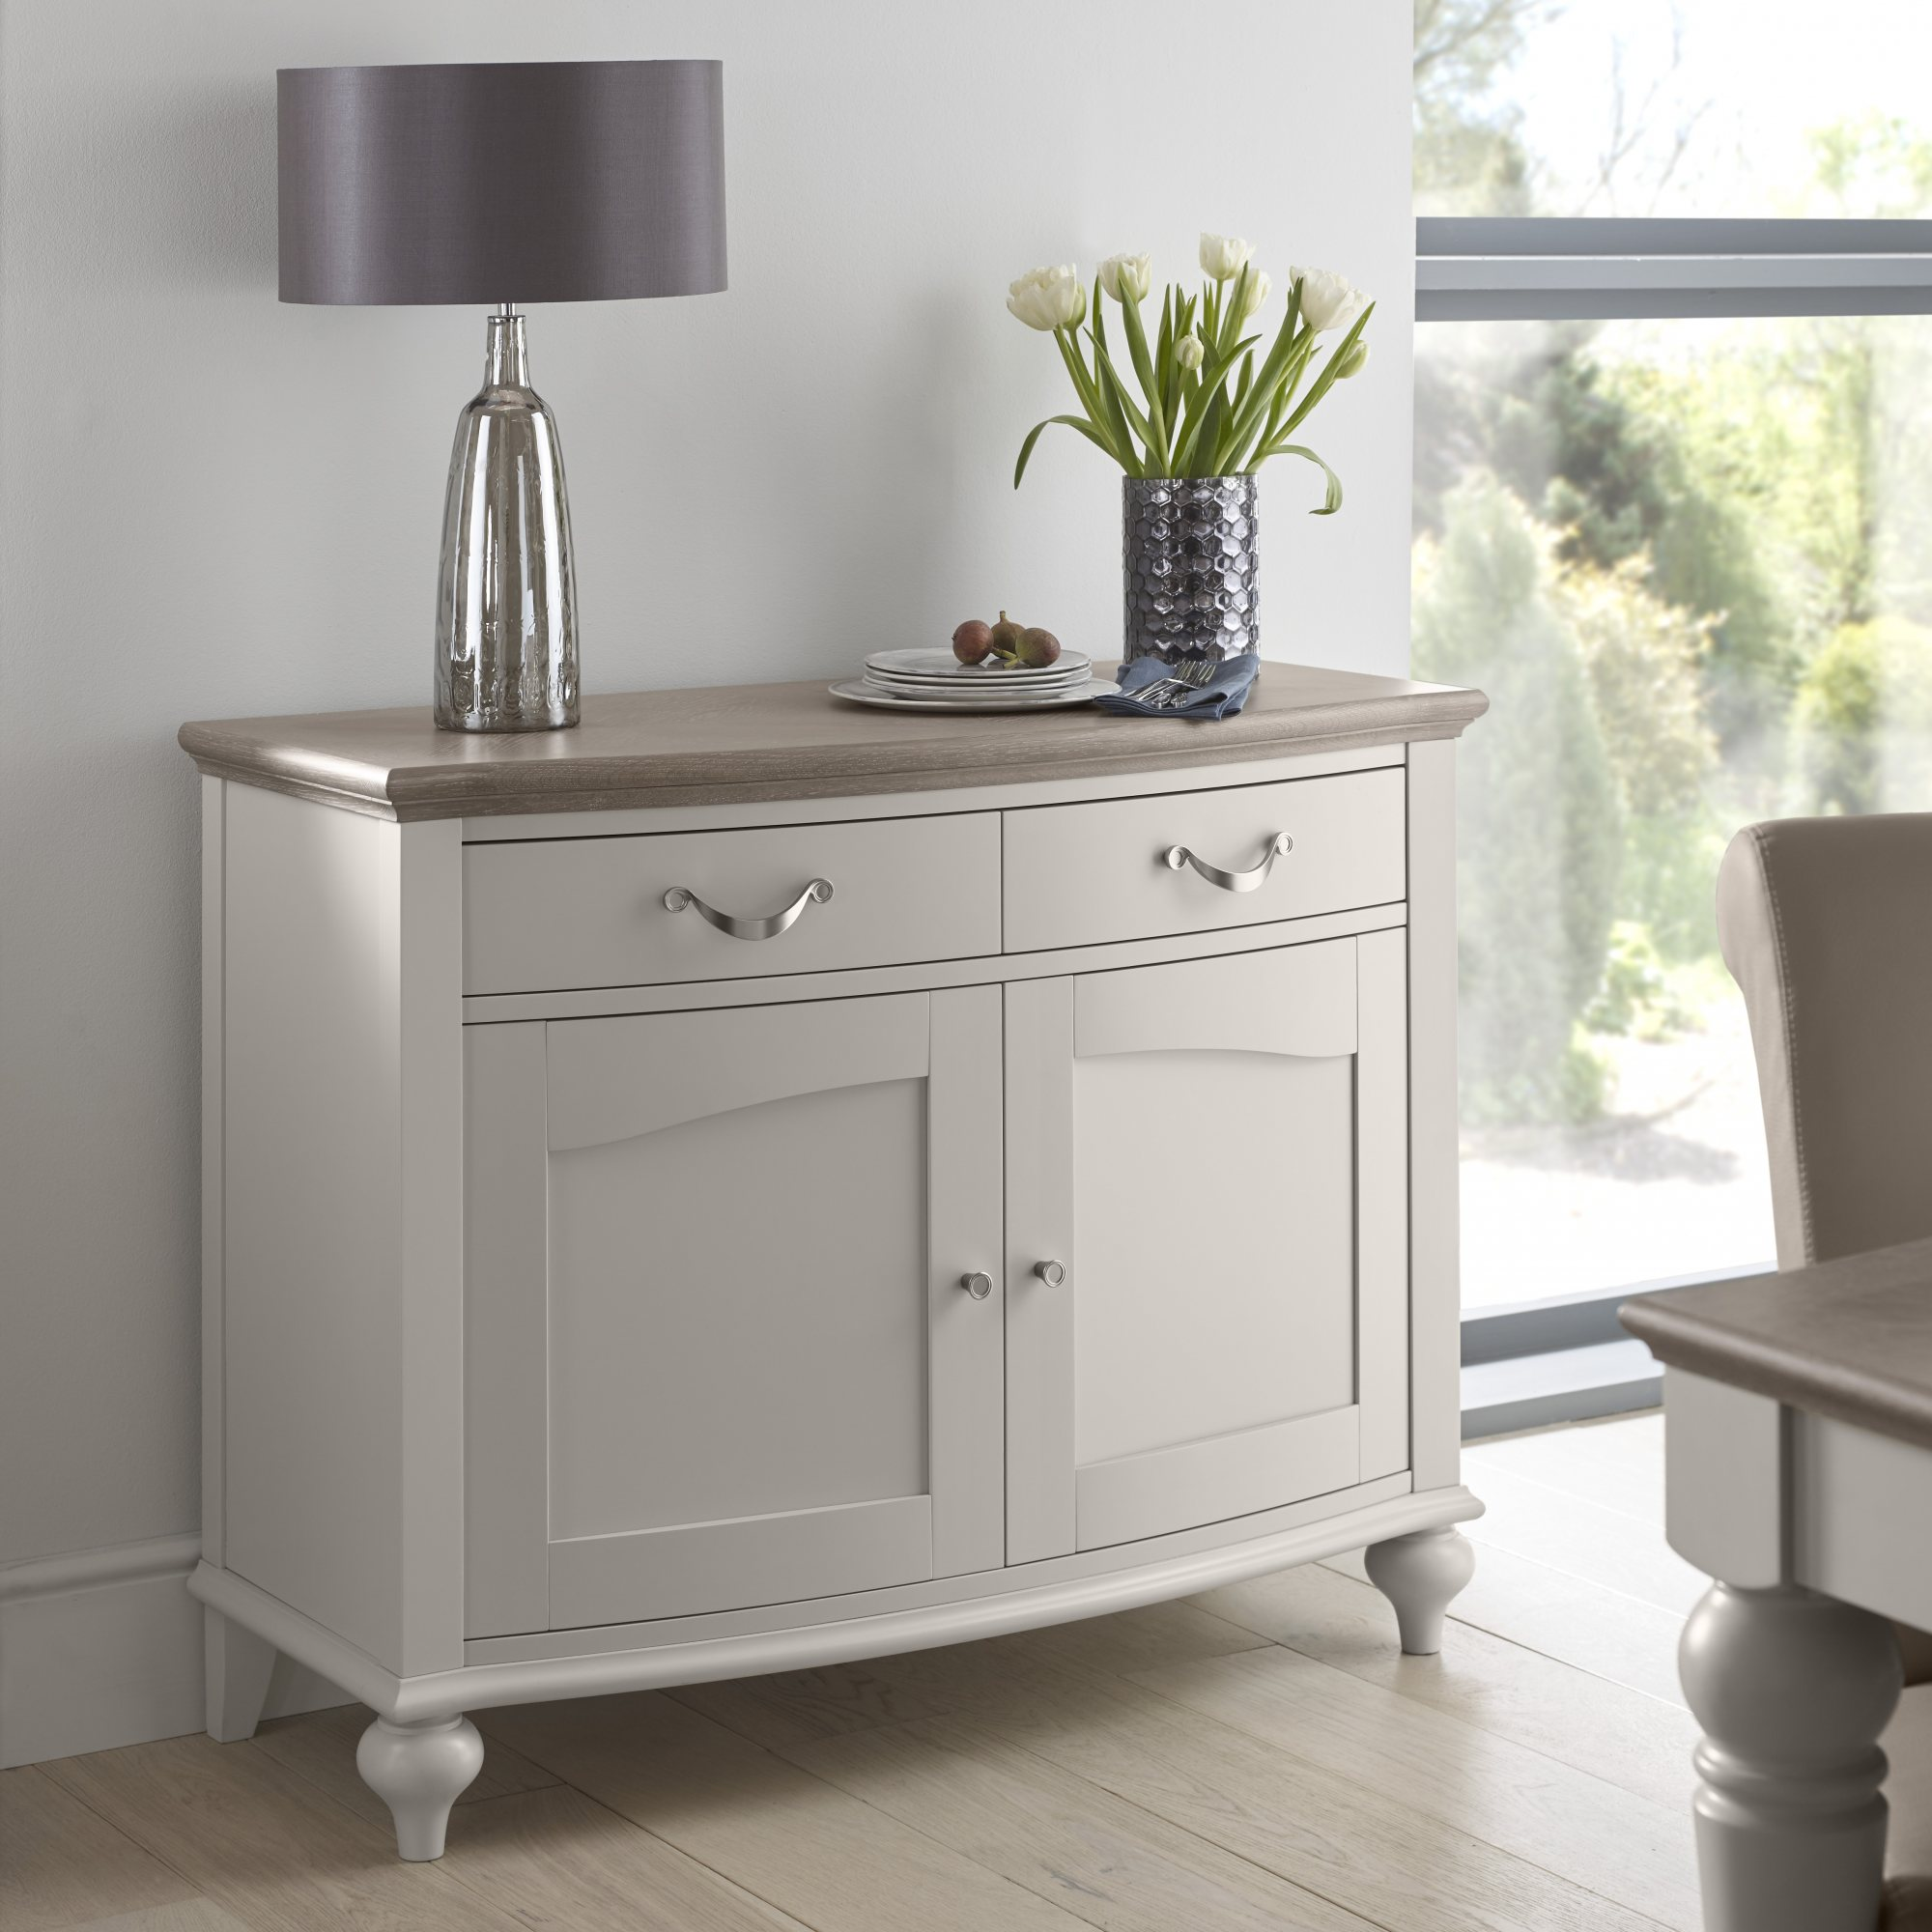 MONICA GREY NARROW SIDEBOARD - L110cm x D48cm x H86cm